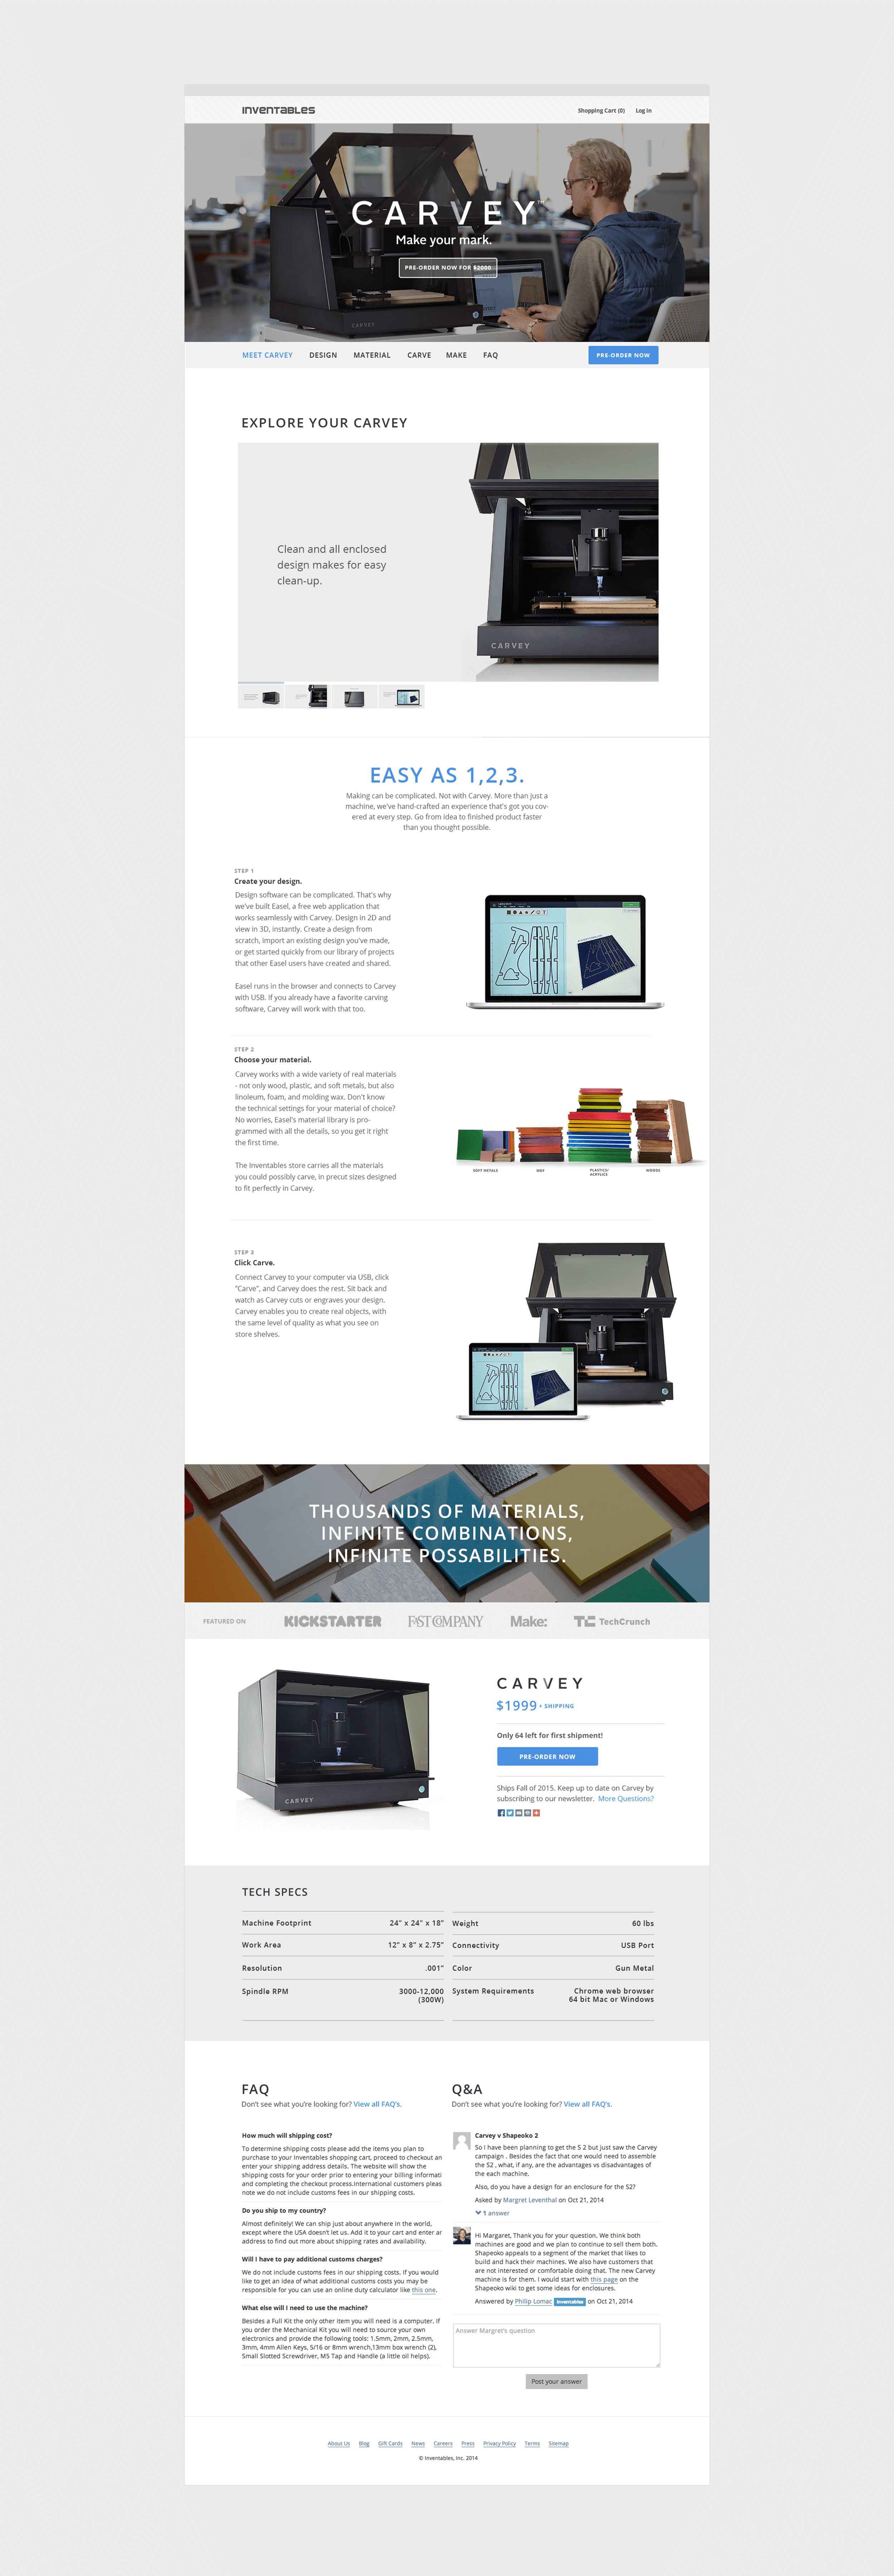 Product page to preorder Carvey